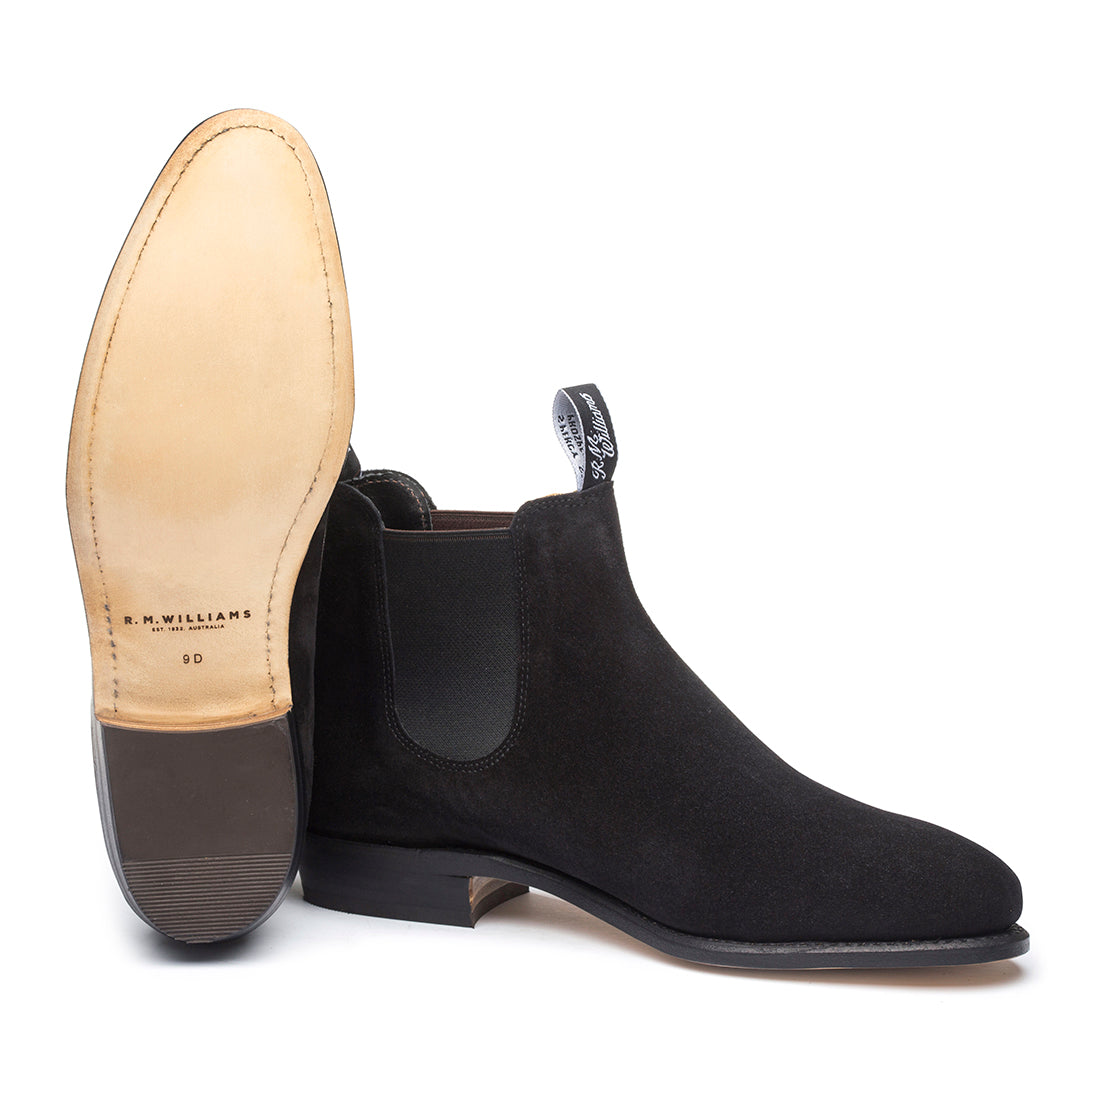 342e0479c59 Womens Suede Adelaide Boots Black